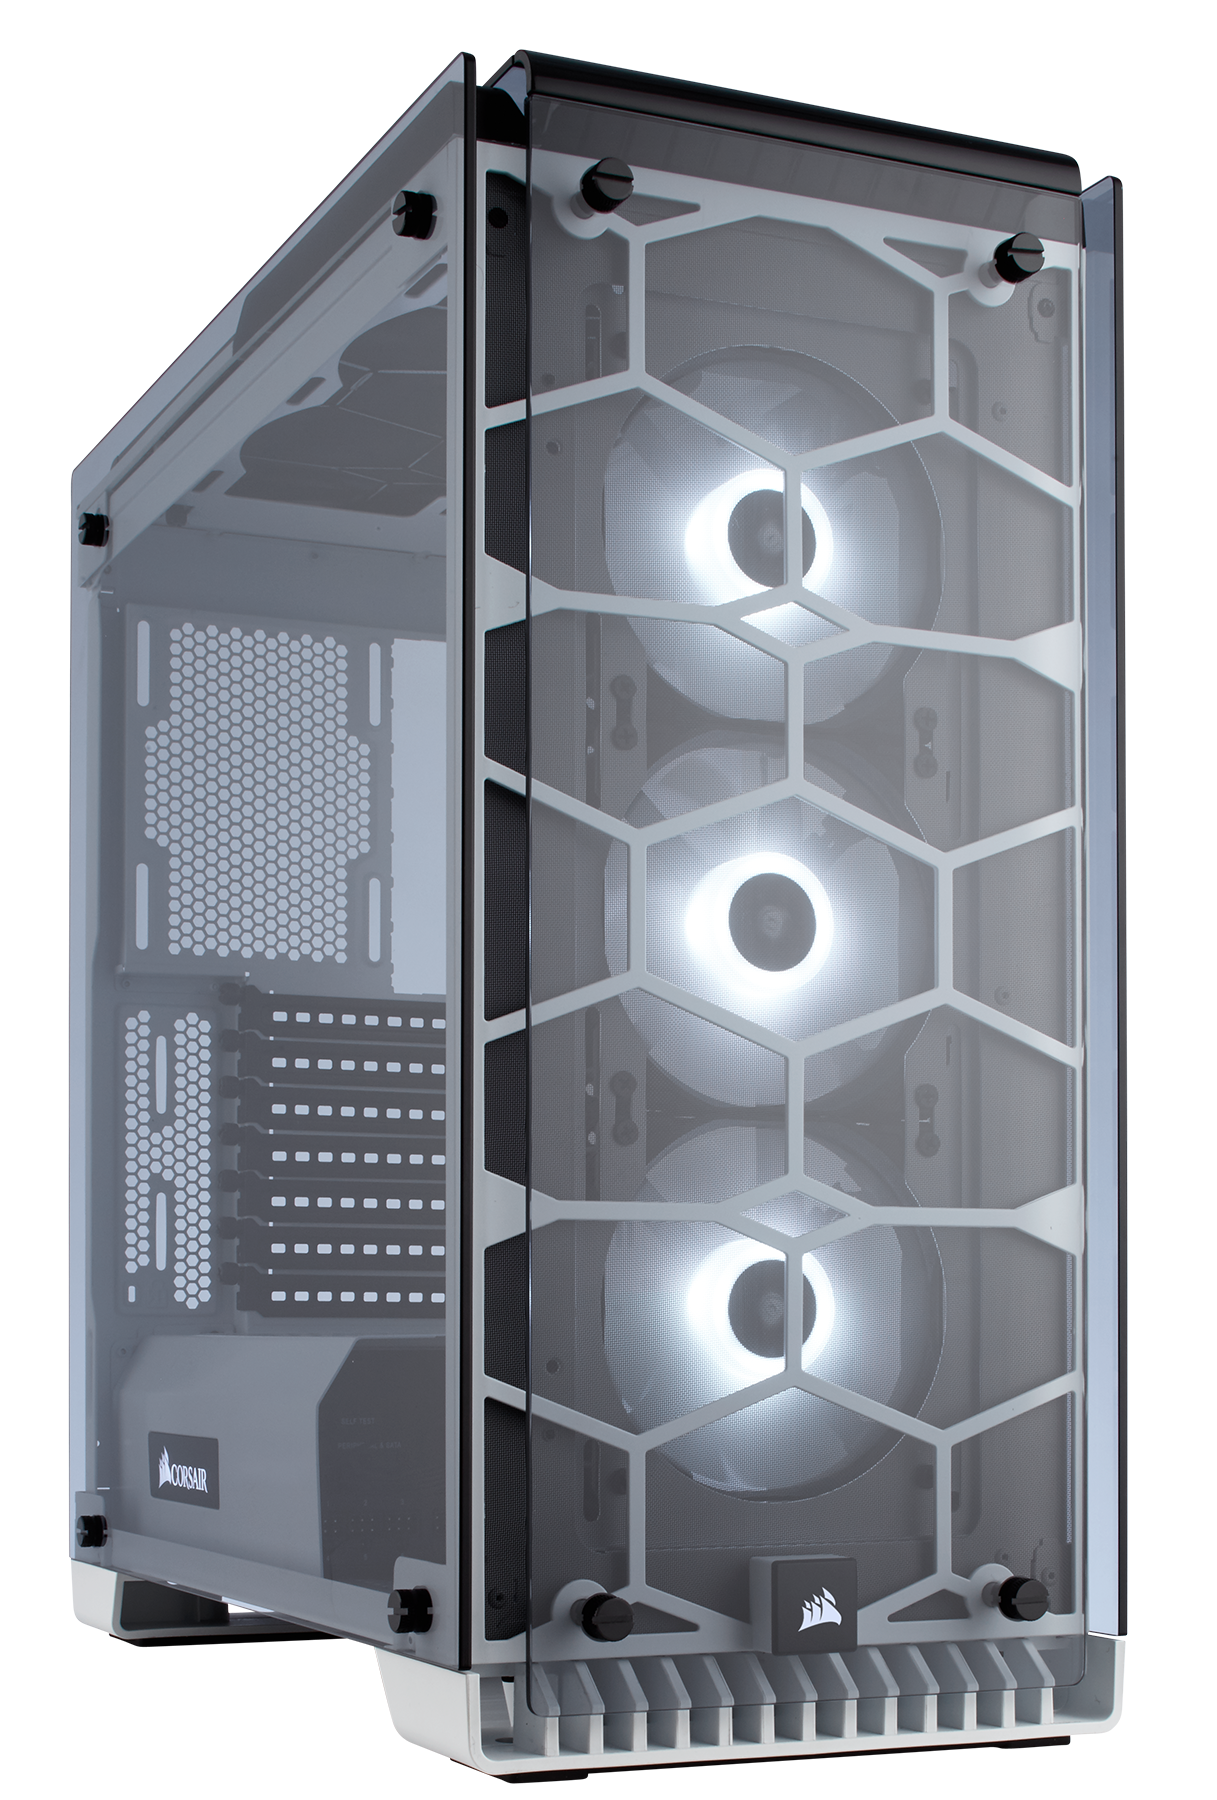 Crystal Series 570x Rgb Atx Mid Tower Case White The Tricolor Leds Can Be Mounted In Three Ways Through With Immaculate Tempered Glass Enclosing Entire Chassis Every Component Of Your Build Is On Display For All To See Including Vivid Sp120 Led